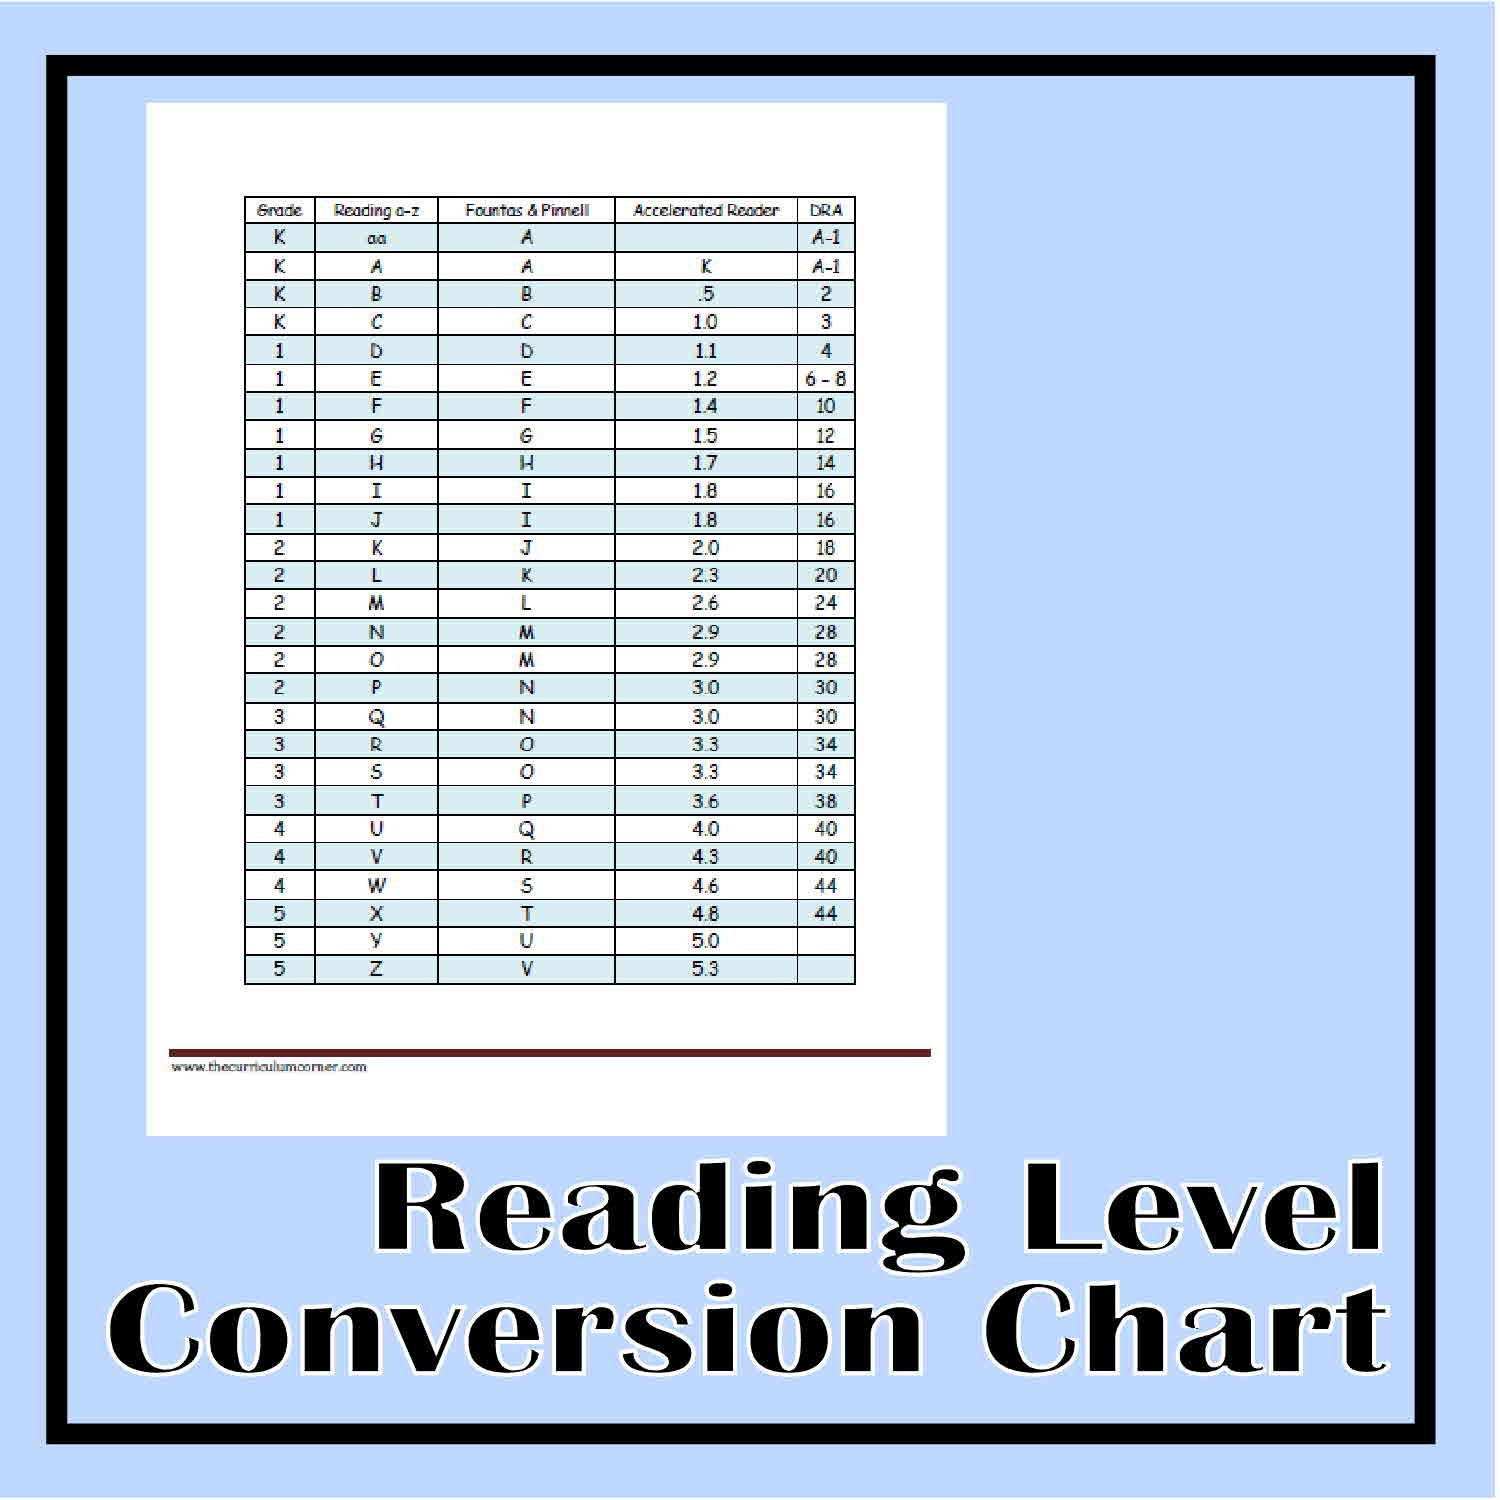 Reading level conversion chart ar reading levels ar reading and chart ar reading level conversion chart this conversion chart makes it easy to find the just geenschuldenfo Choice Image